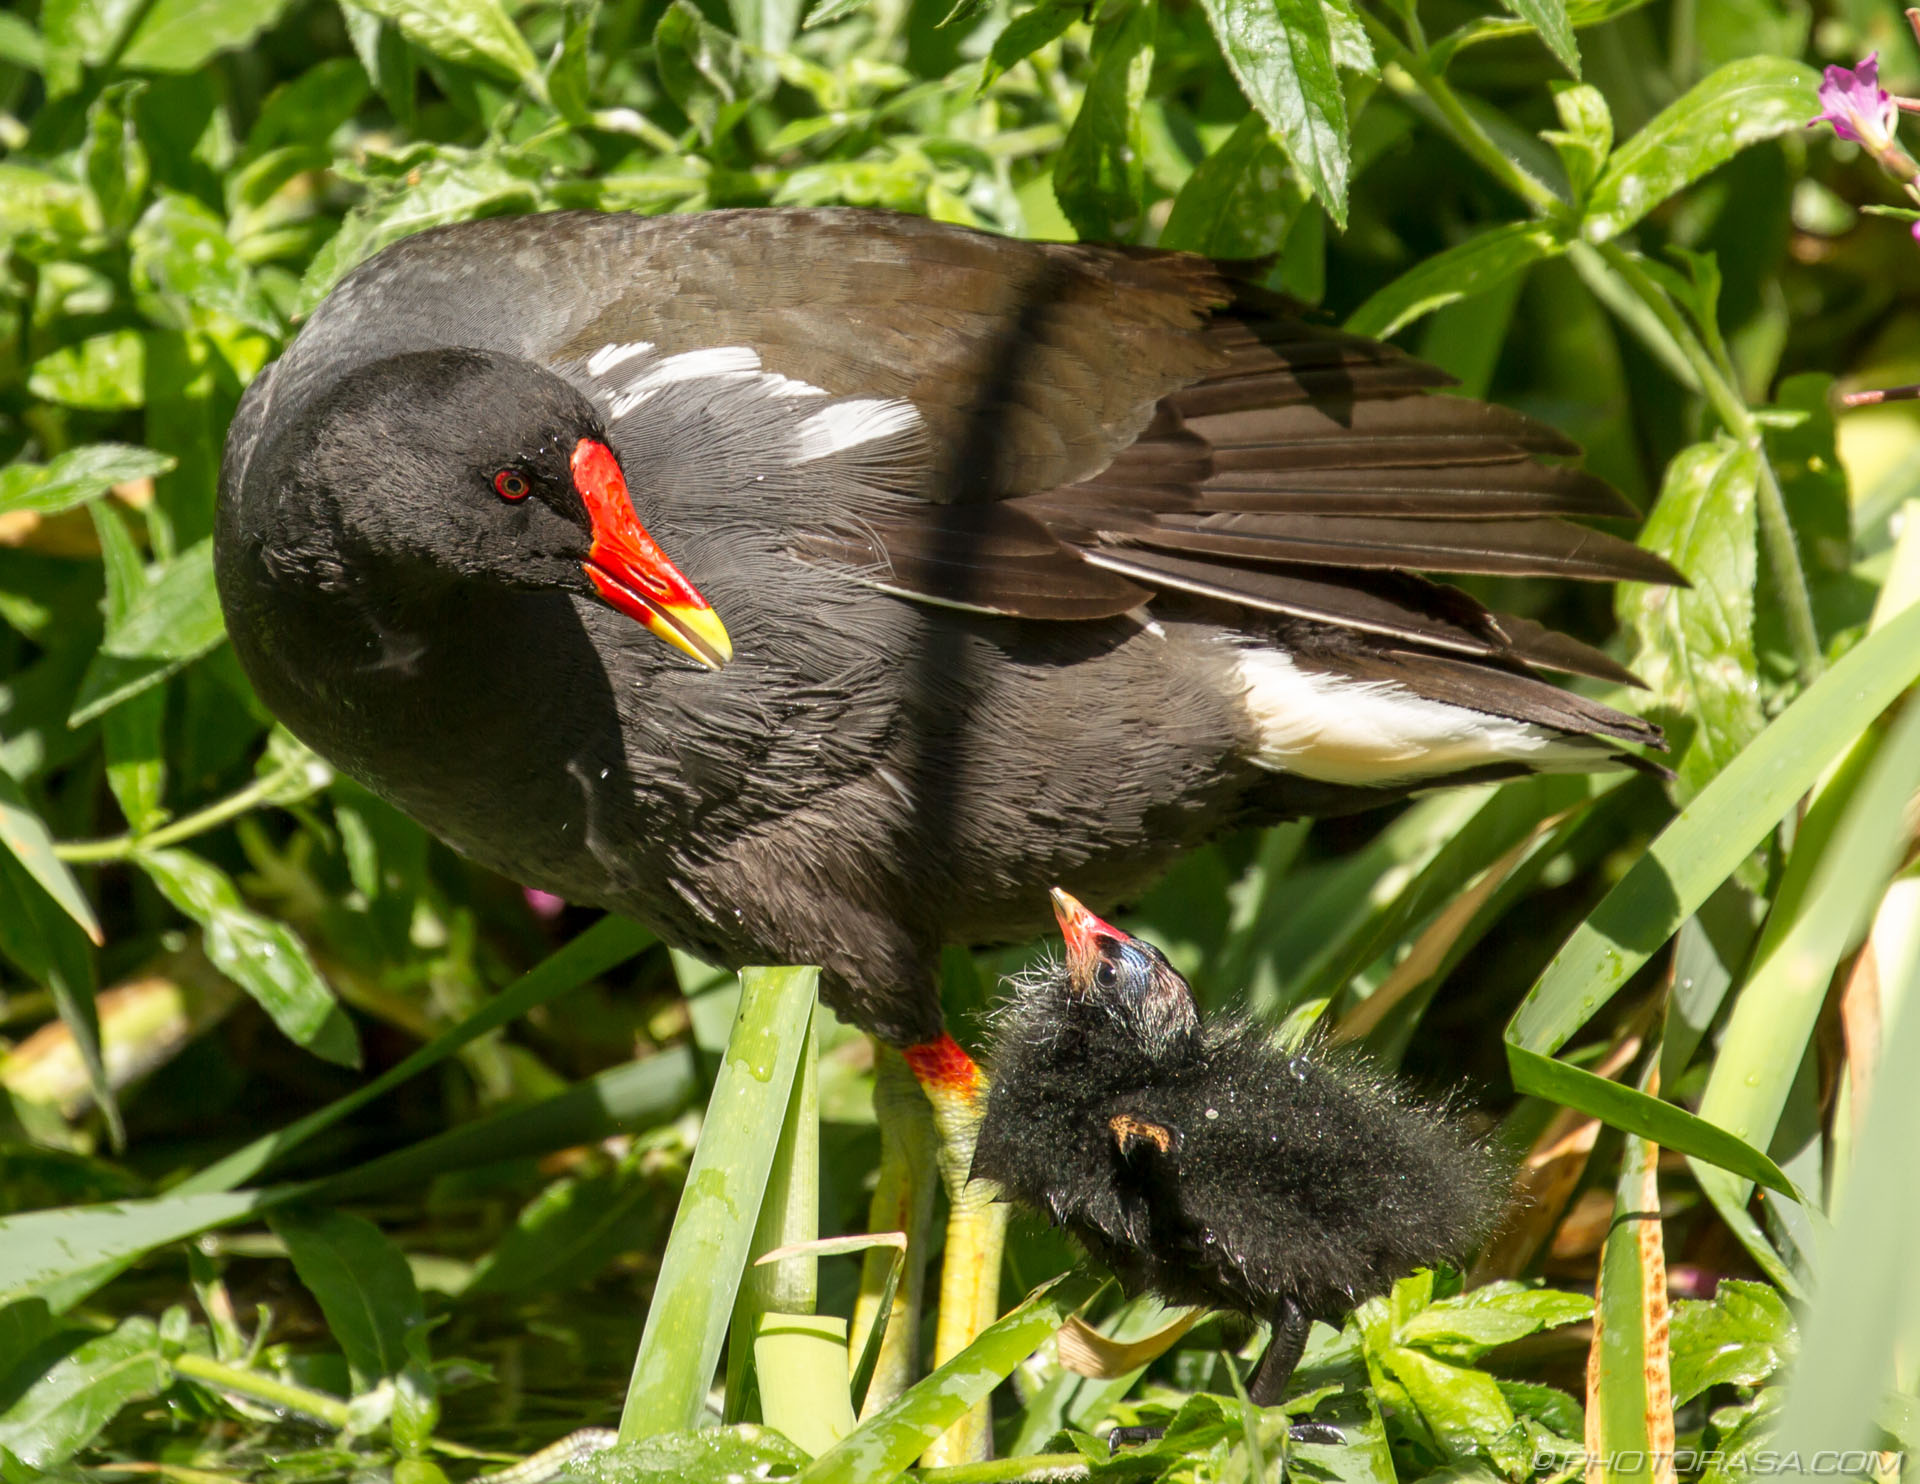 http://photorasa.com/baby-moorhen-and-mother/mother-and-baby-looking-at-each-other/